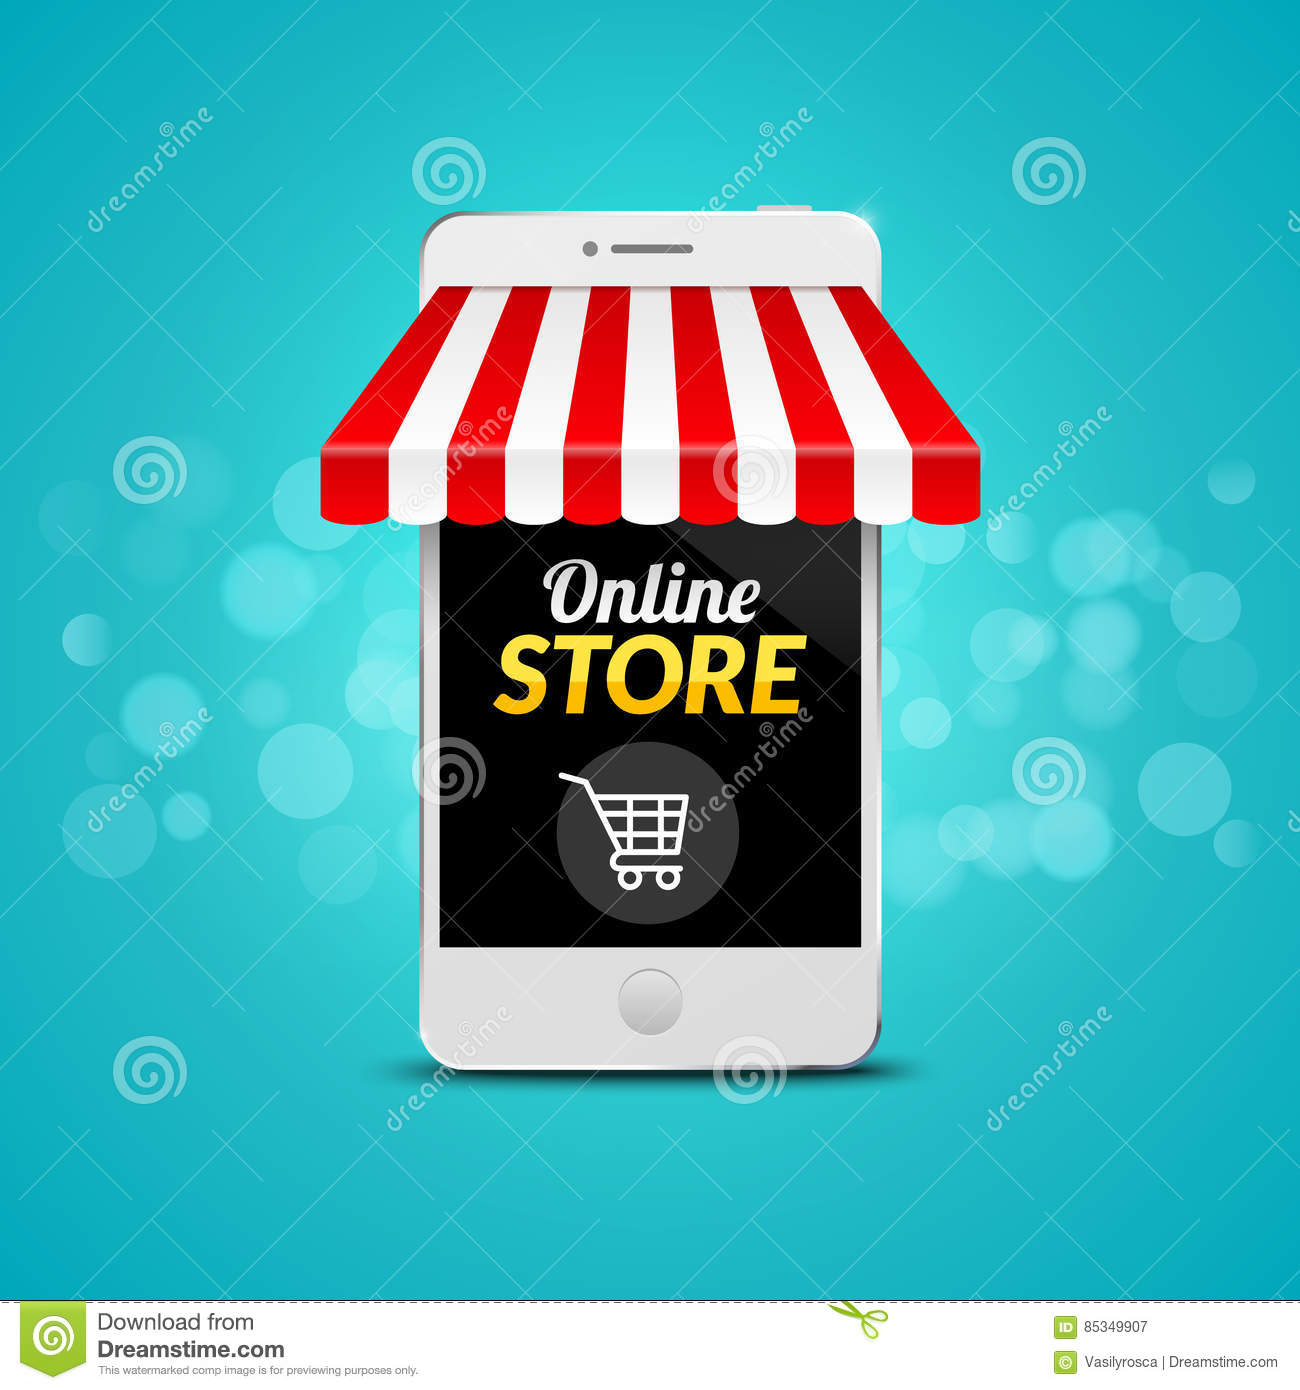 marketing an online store